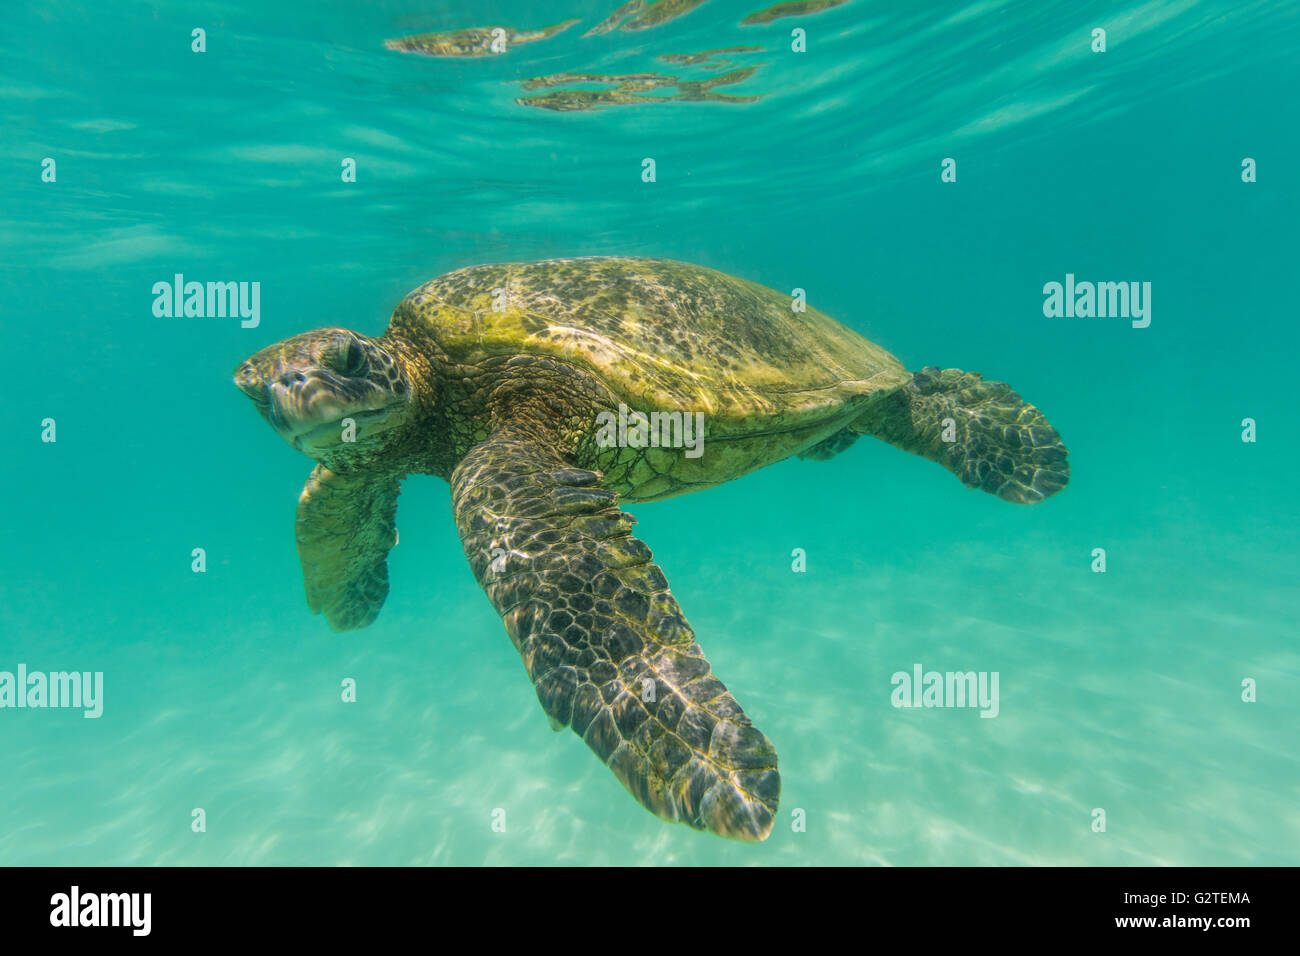 An underwater close up of a Hawaiian Green sea turtle in the ocean looking at the camera. - Stock Image